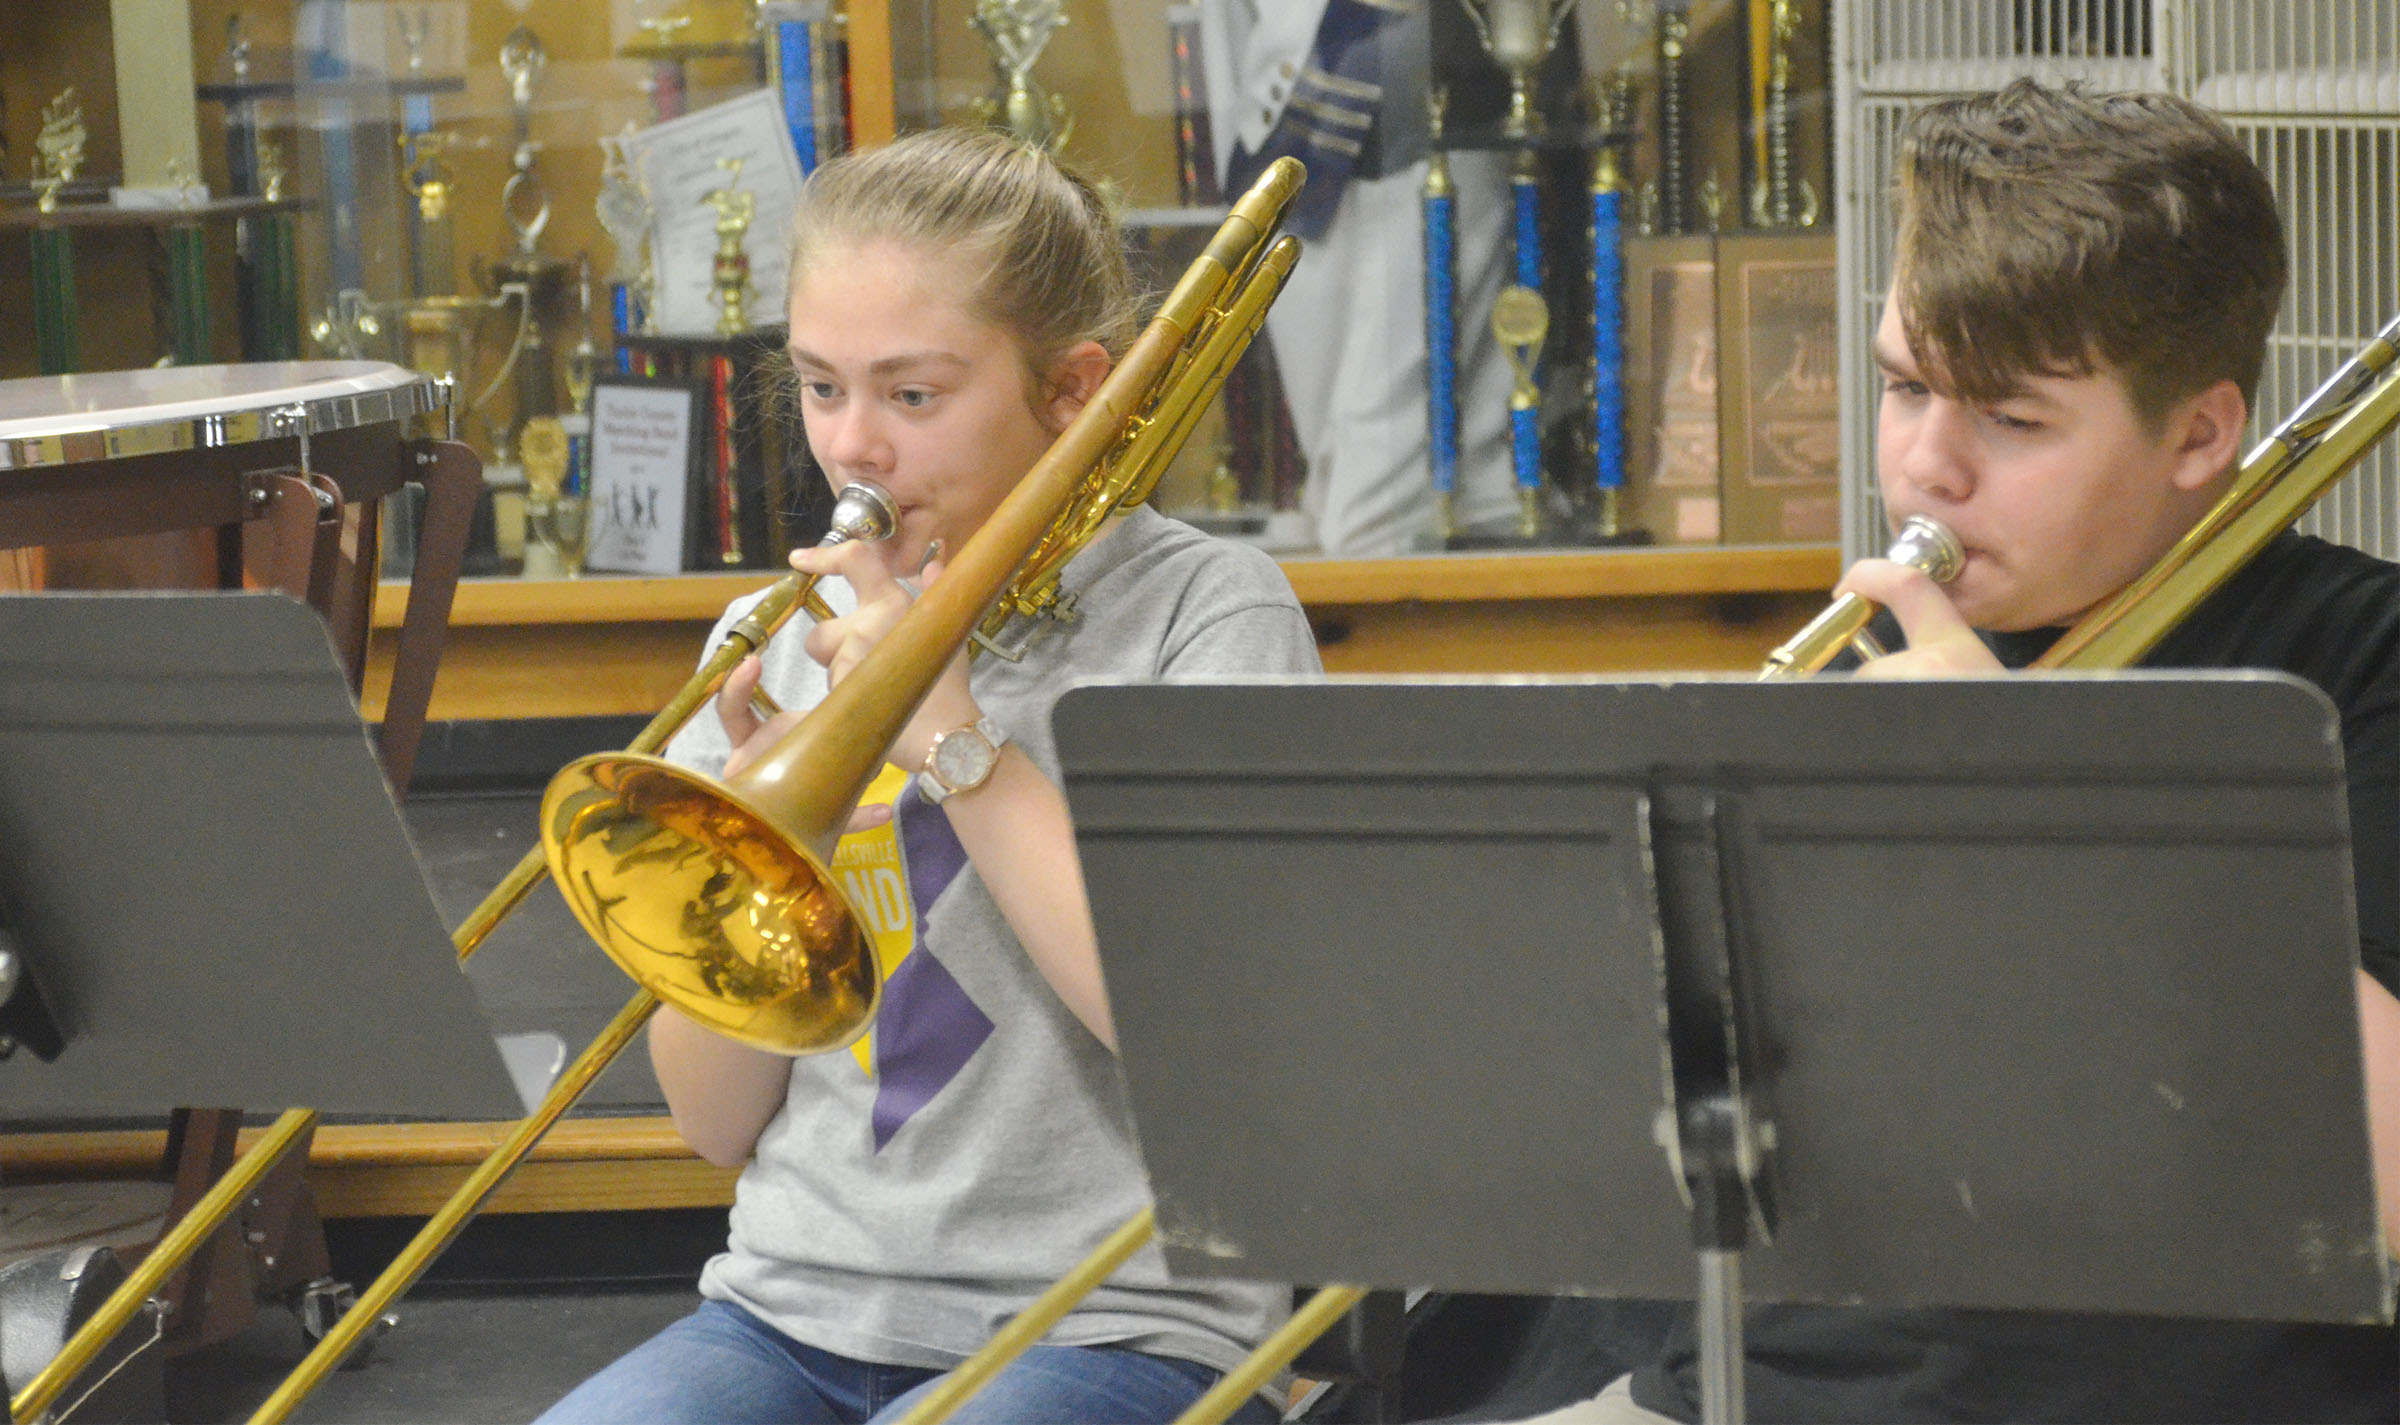 Campbellsville Middle School eighth-grader Emily Kerns, at left, and seventh-grader Austin Jeffries play trombone.